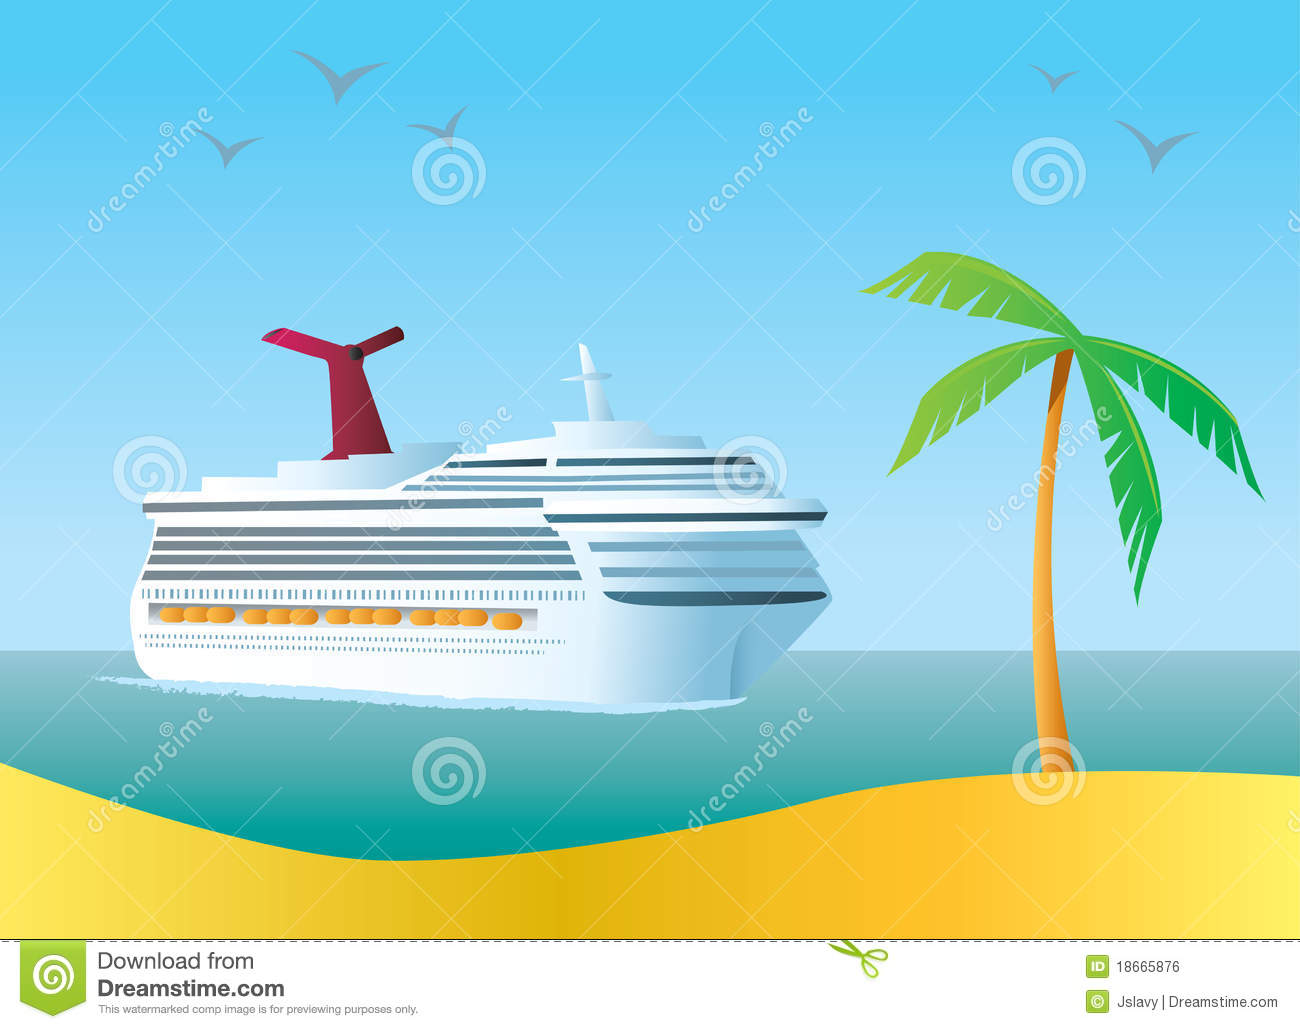 Cartoon Cruise Ships Cruise Ship